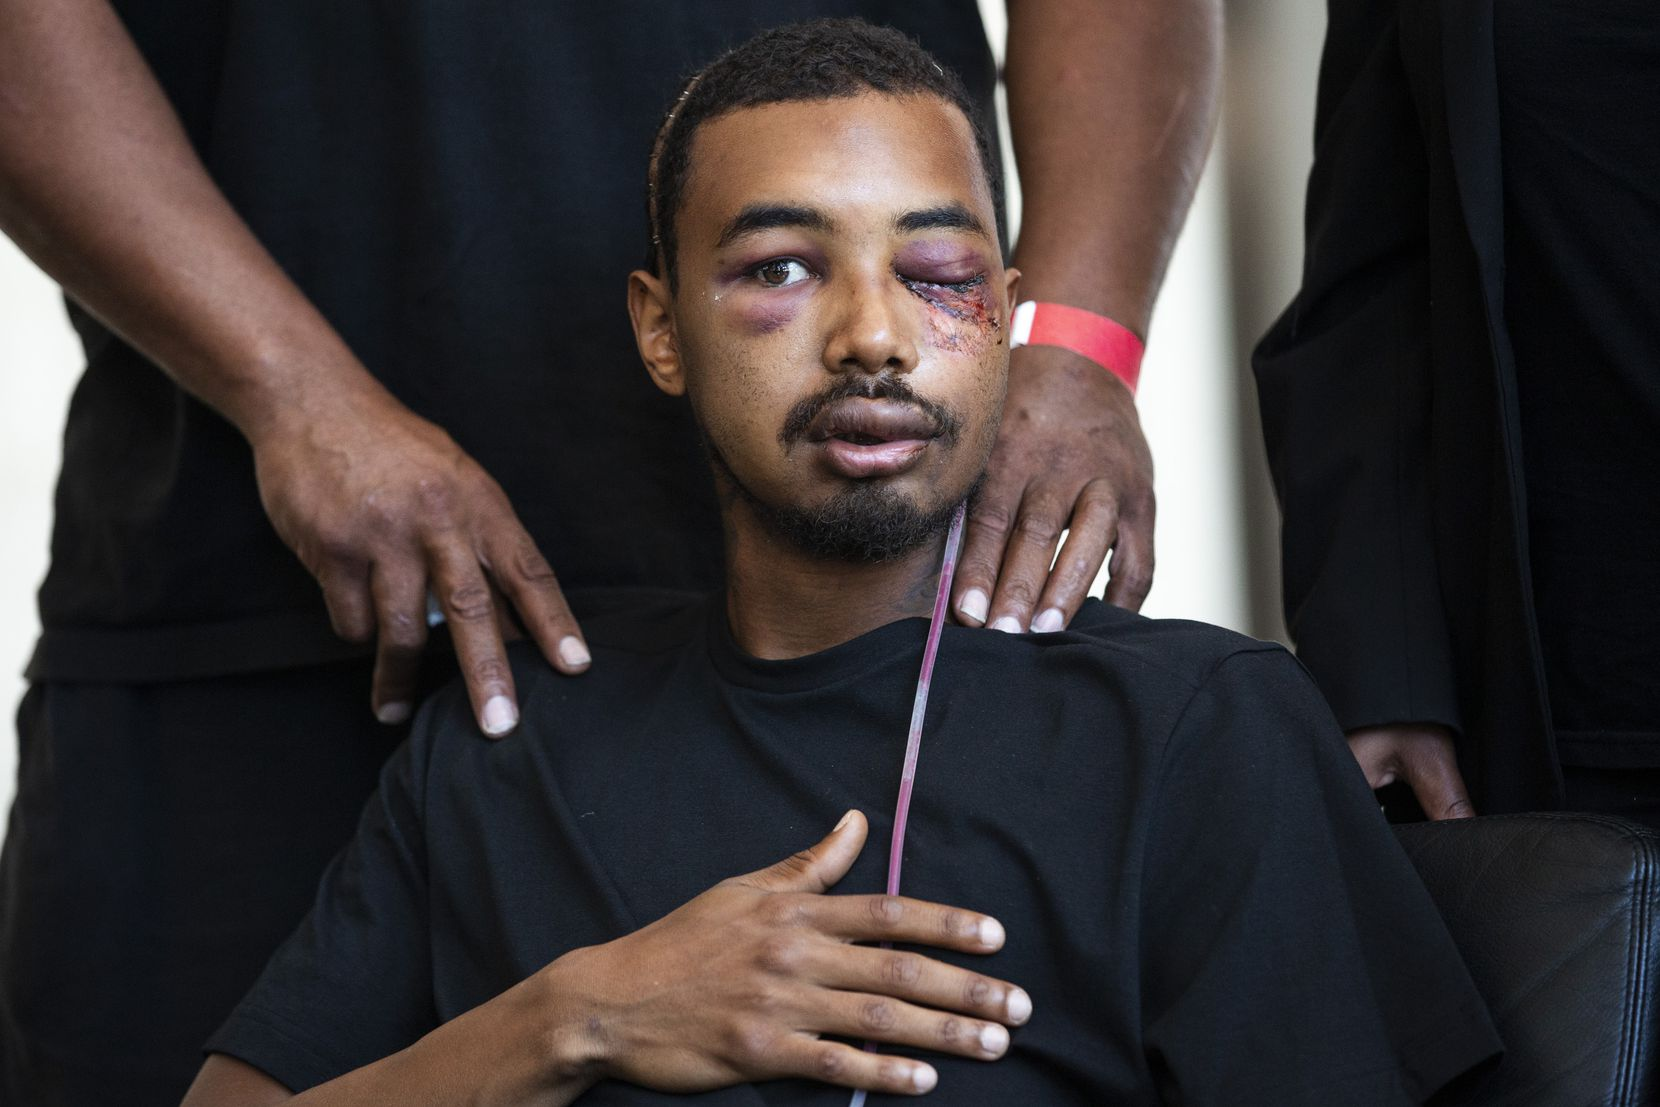 Brandon Saenz, 26, and his legal representation explain how Saenz was hit by a rubber bullet fired by Dallas Police at this past weekendÕs protests during a press conference in downtown Dallas on Wednesday, June 3, 2020. Saenz lost his left eye and has had to have metal plates put in his head. Law enforcement used various crowd control weapons throughout last weekend as hundreds of demonstrators took to the streets to denounce police brutality in response to the recent deaths of George Floyd in Minneapolis and Breonna Taylor in Louisville. (Lynda M. Gonzalez/The Dallas Morning News)